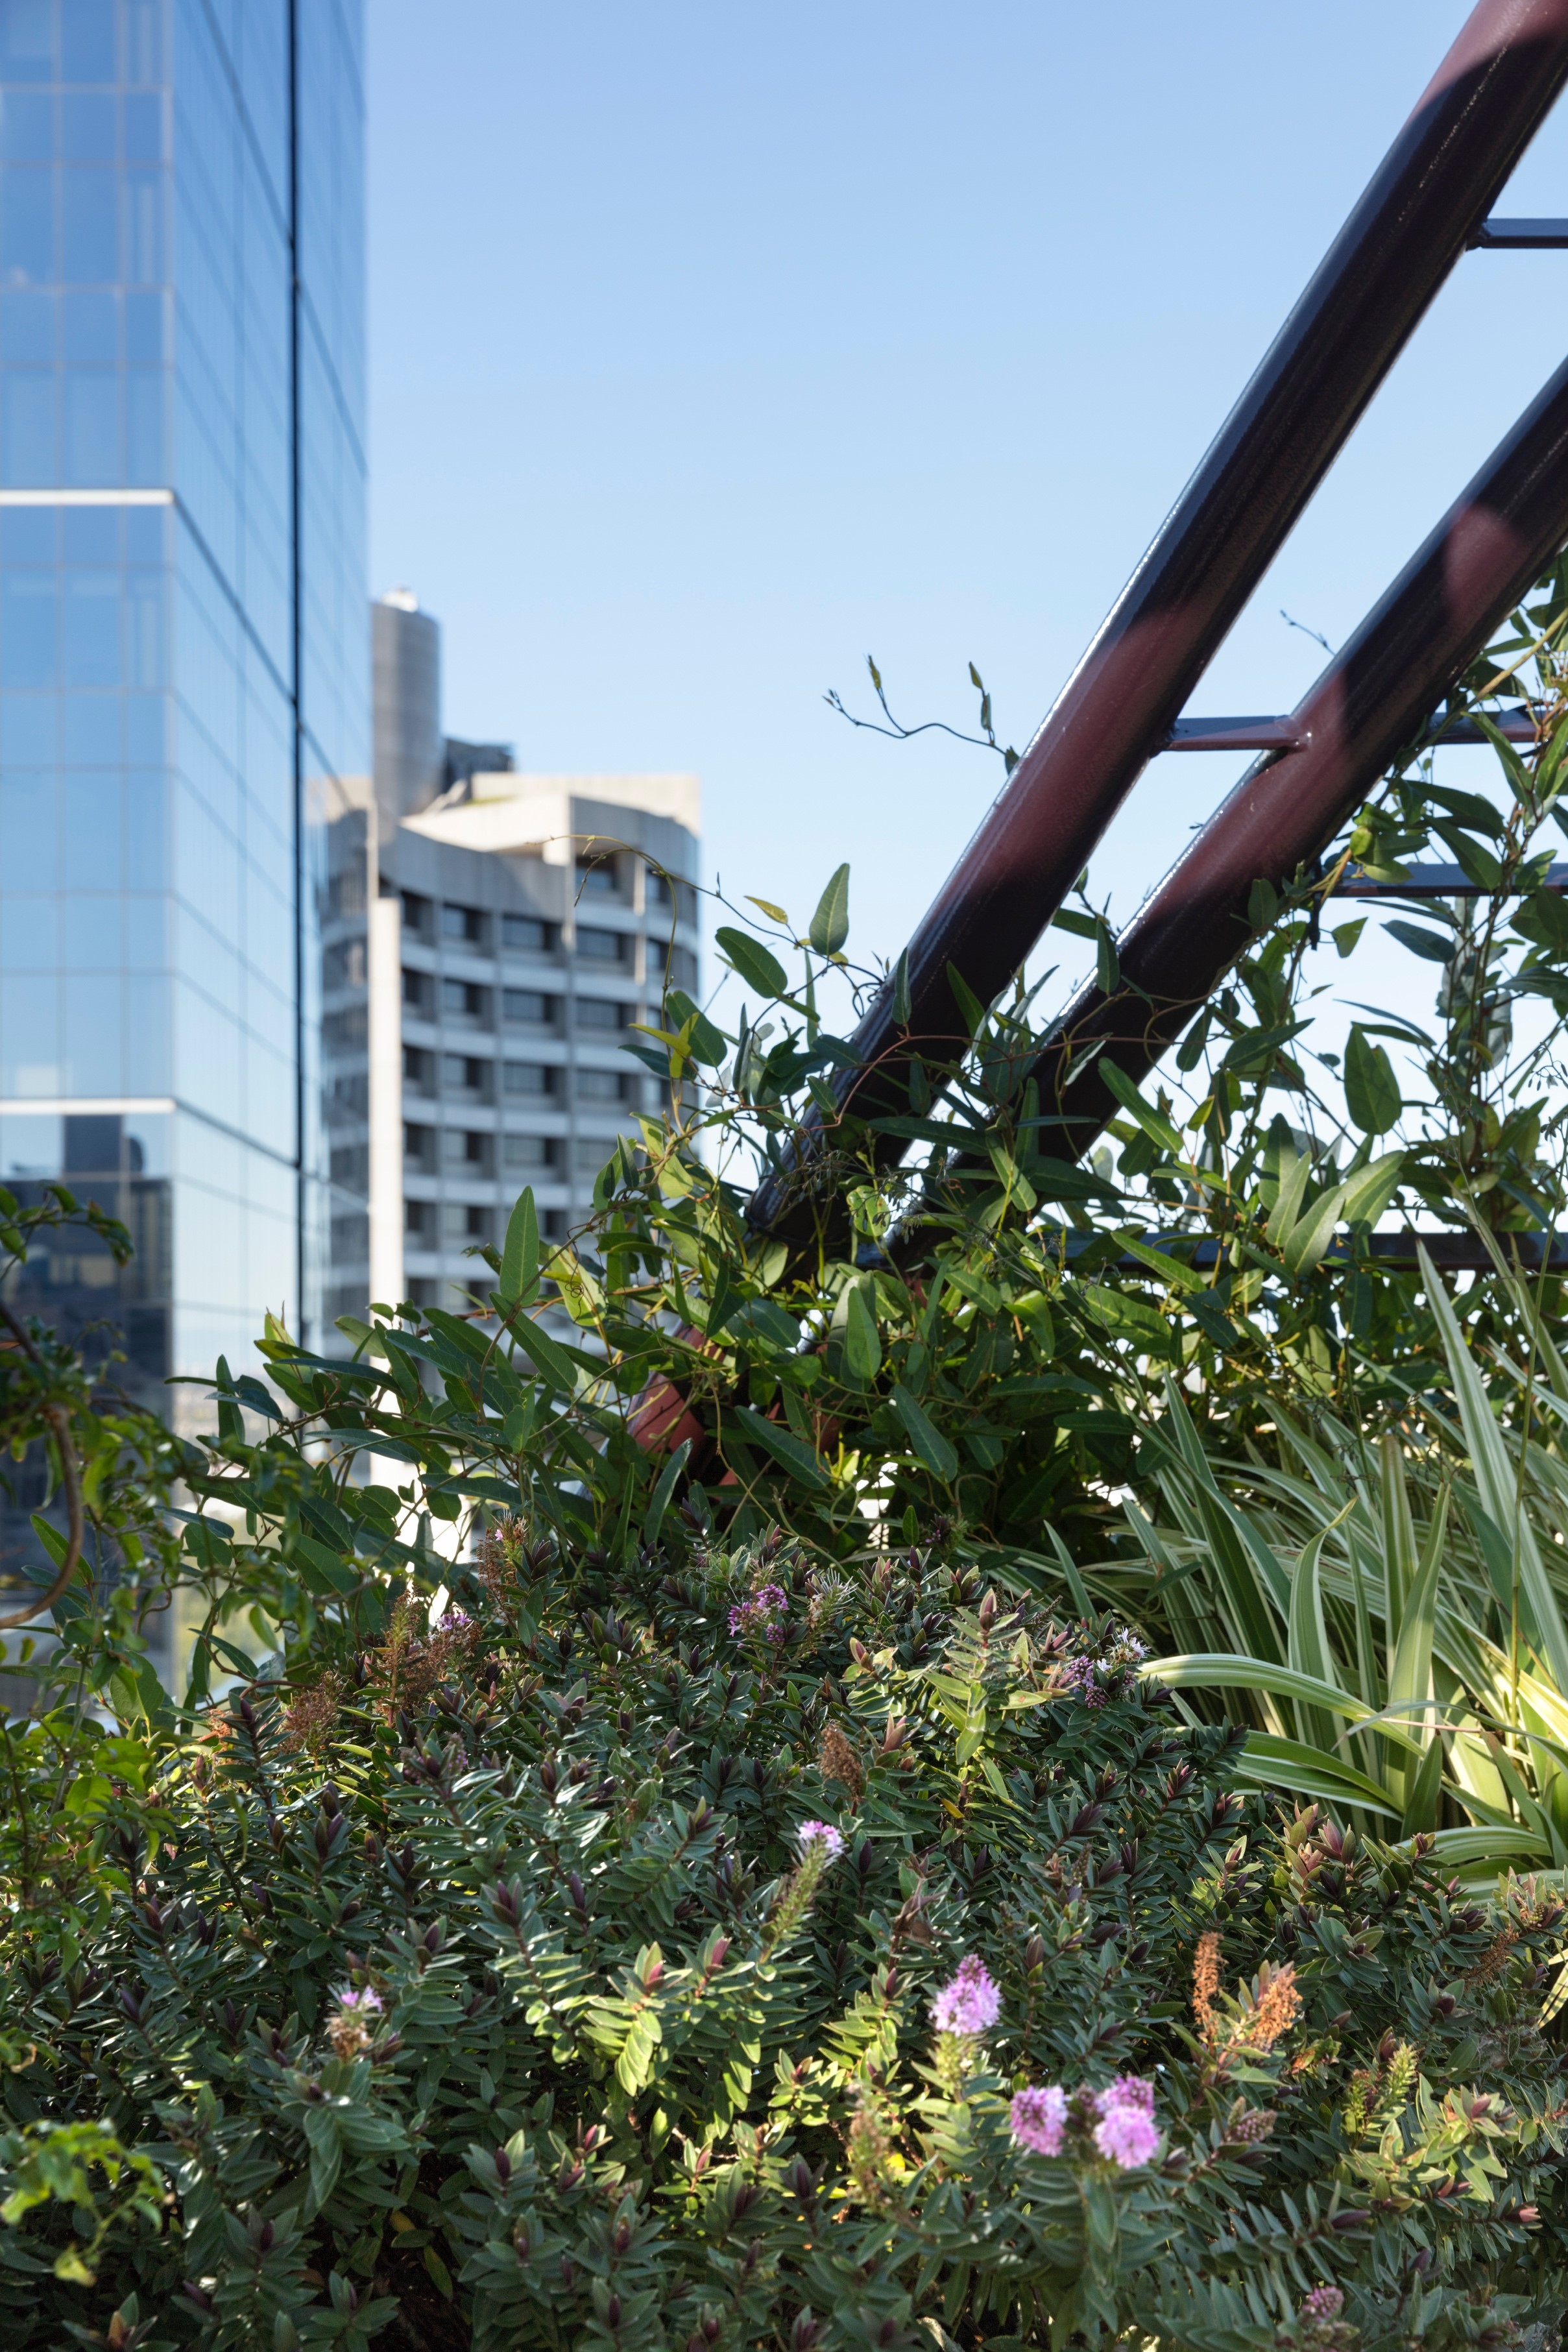 Gallery Of Phoenix Rooftop Garden By Bent Architecture Local Australian Architecture & Design Melbourne, Vic Image 2